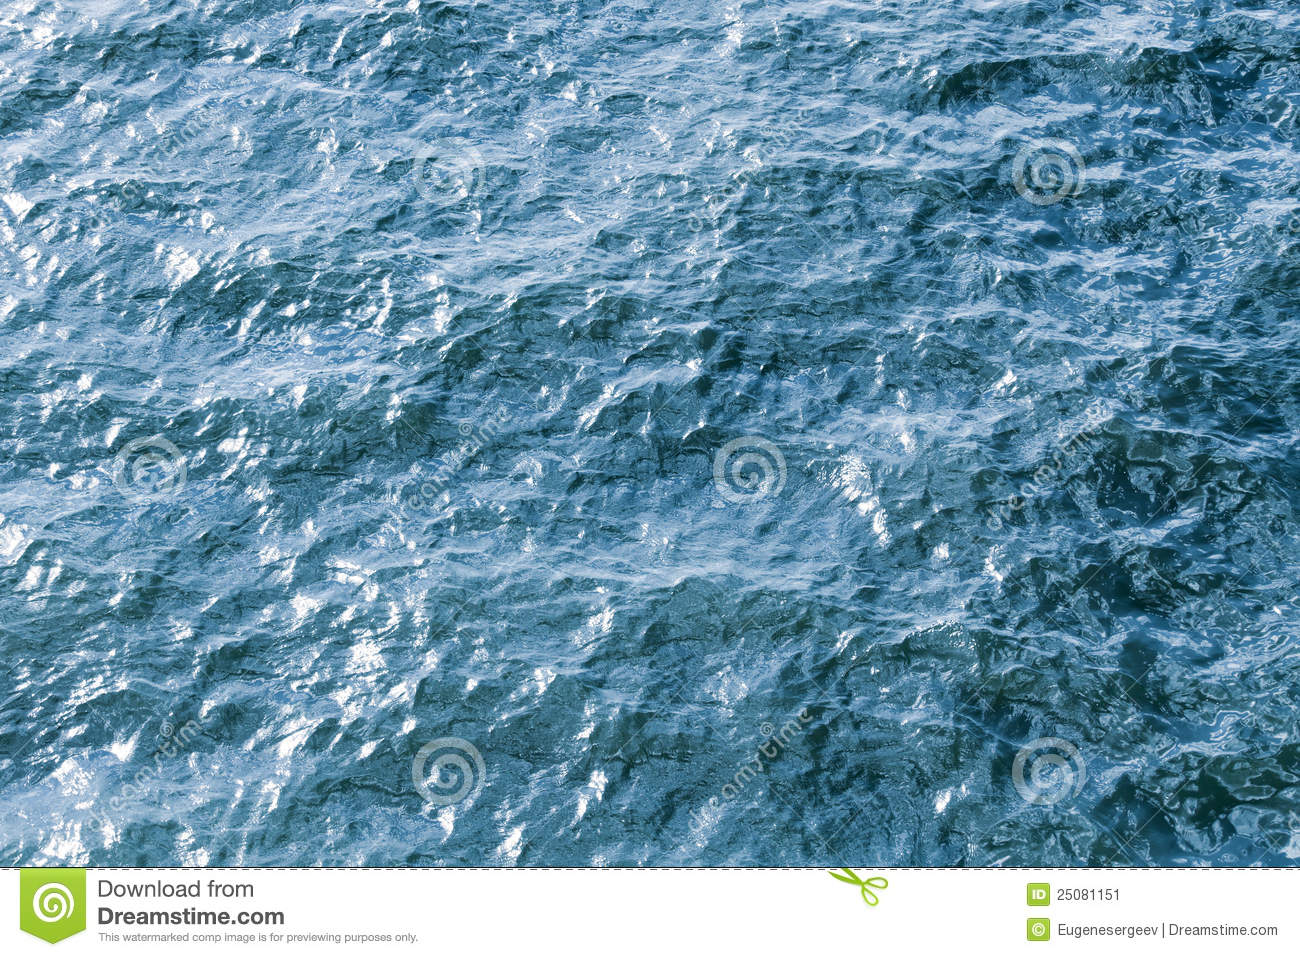 Seamless river water texture Water Section Detailed Texture Of River Water Dreamstimecom Texture Of River Water Stock Image Image Of Blue Pool 25081151